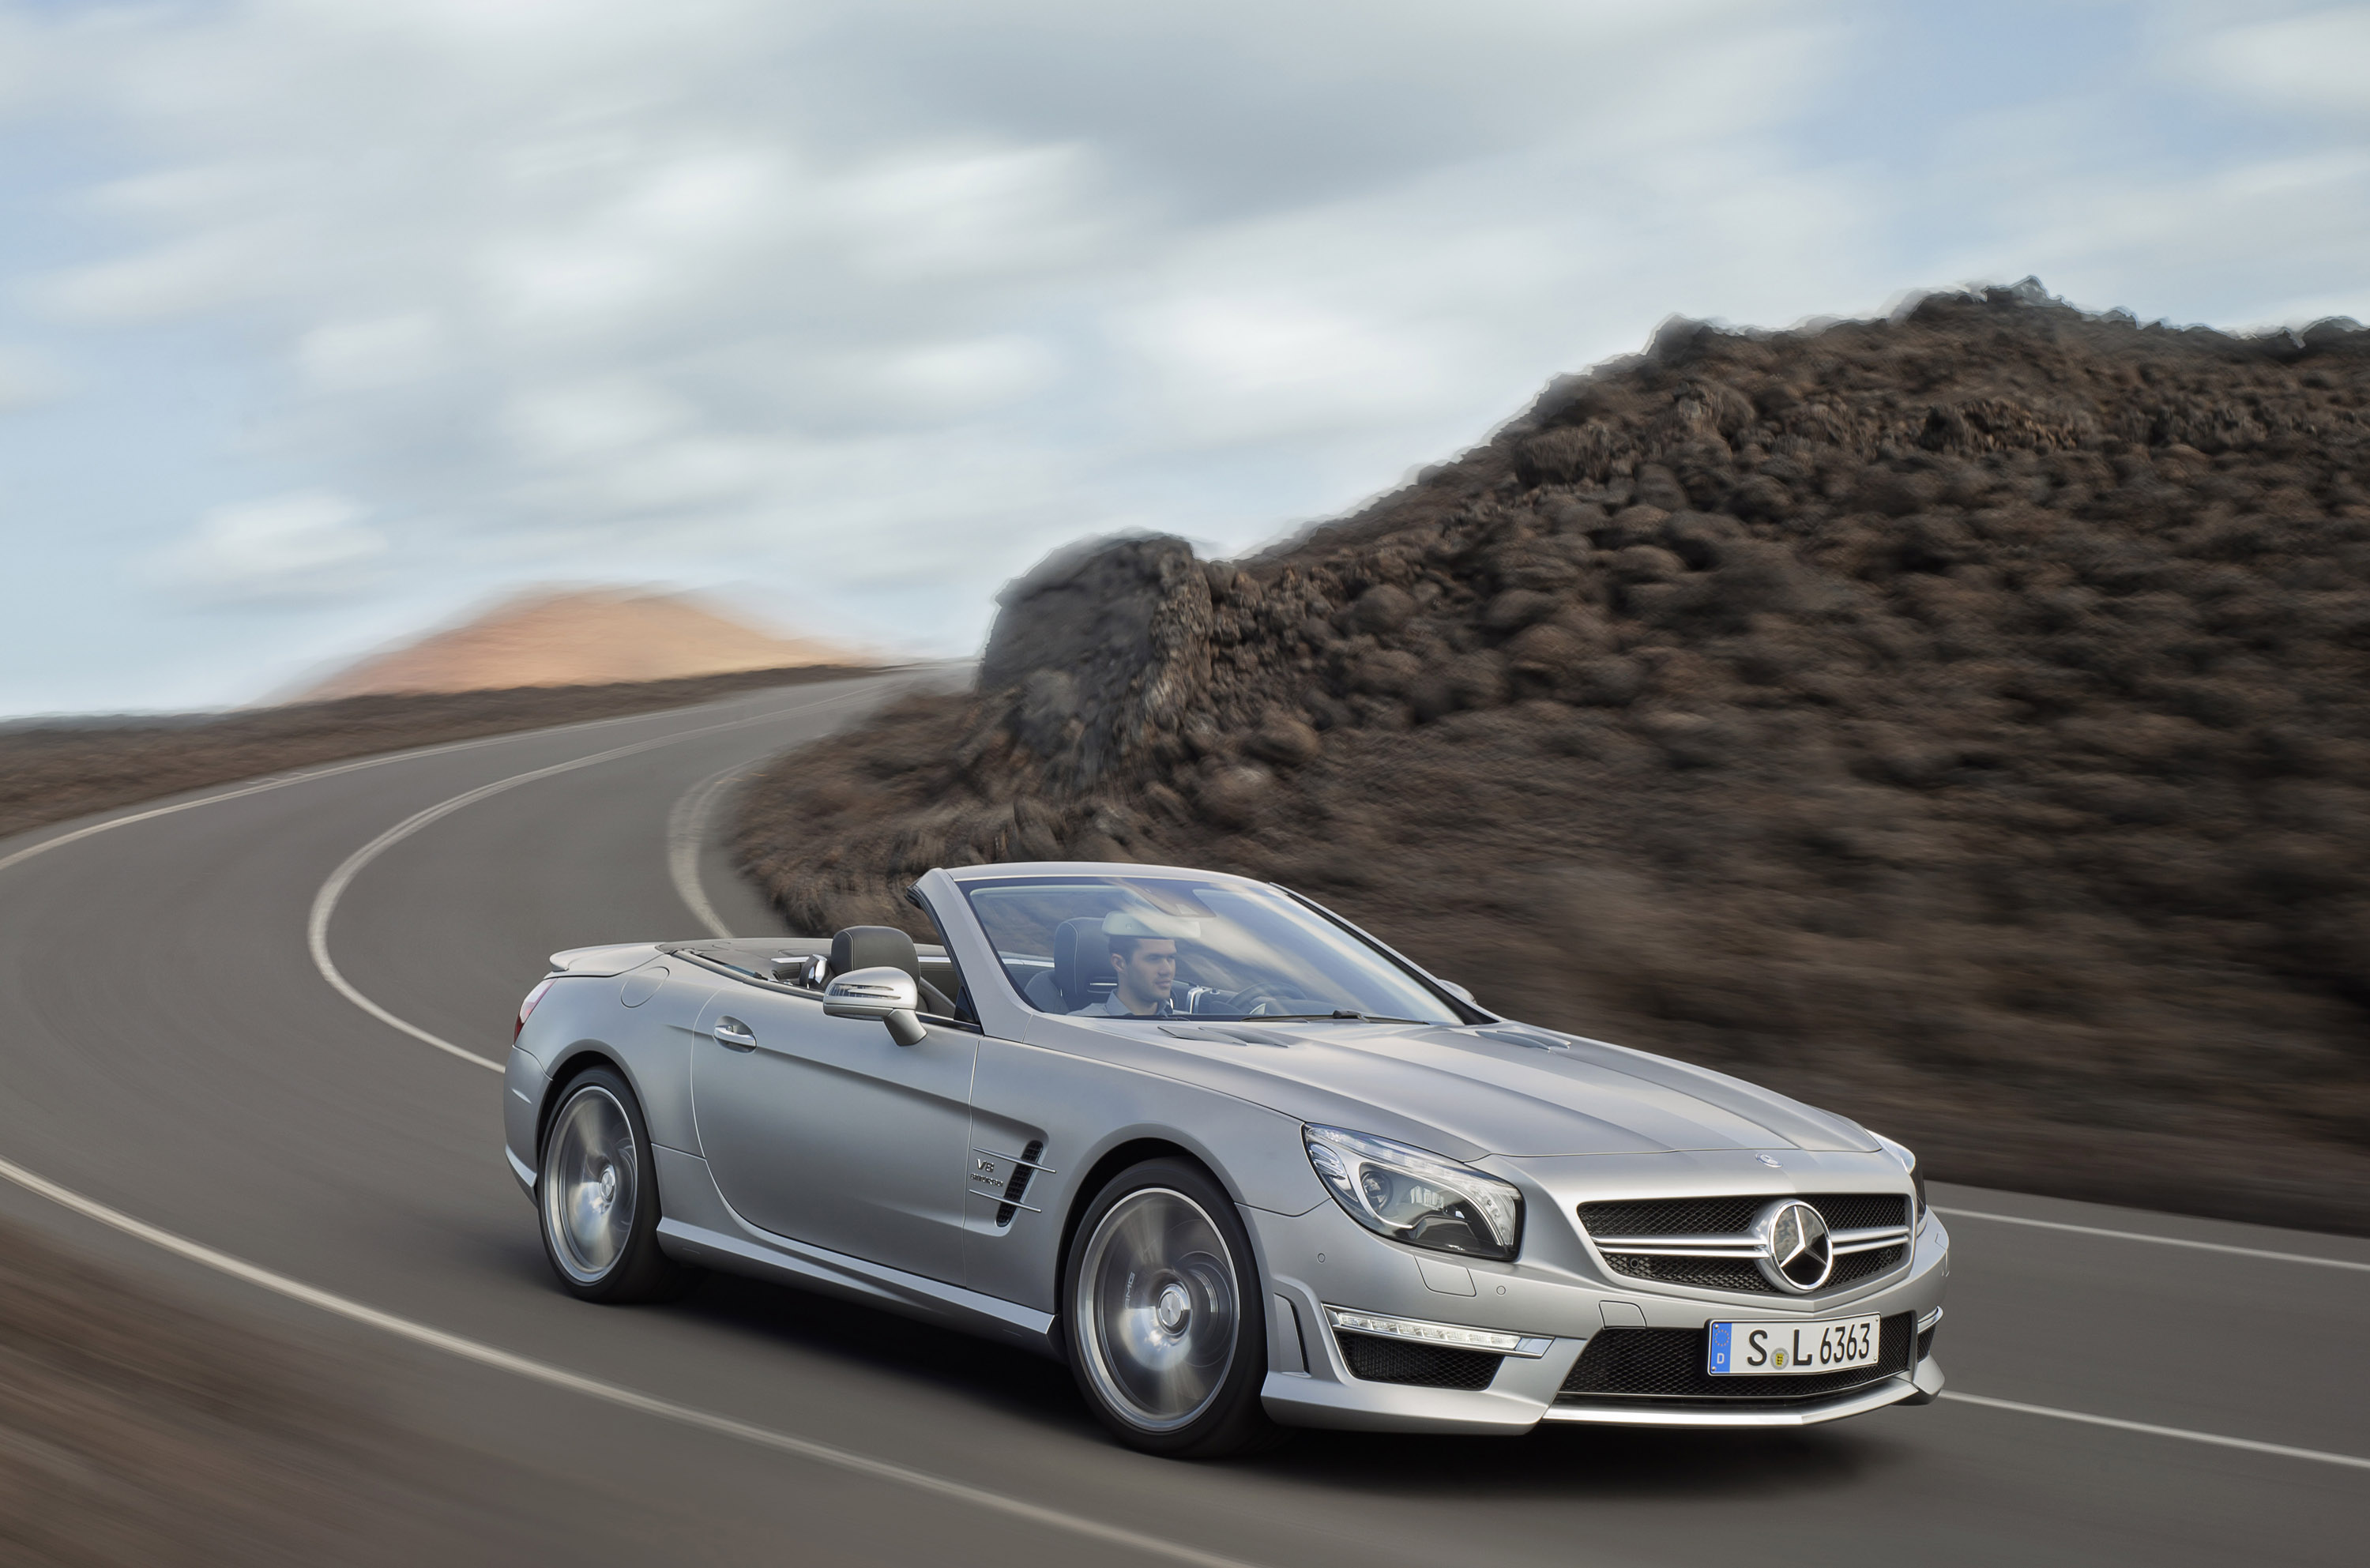 2012 mercedes benz sl 63 amg. Black Bedroom Furniture Sets. Home Design Ideas